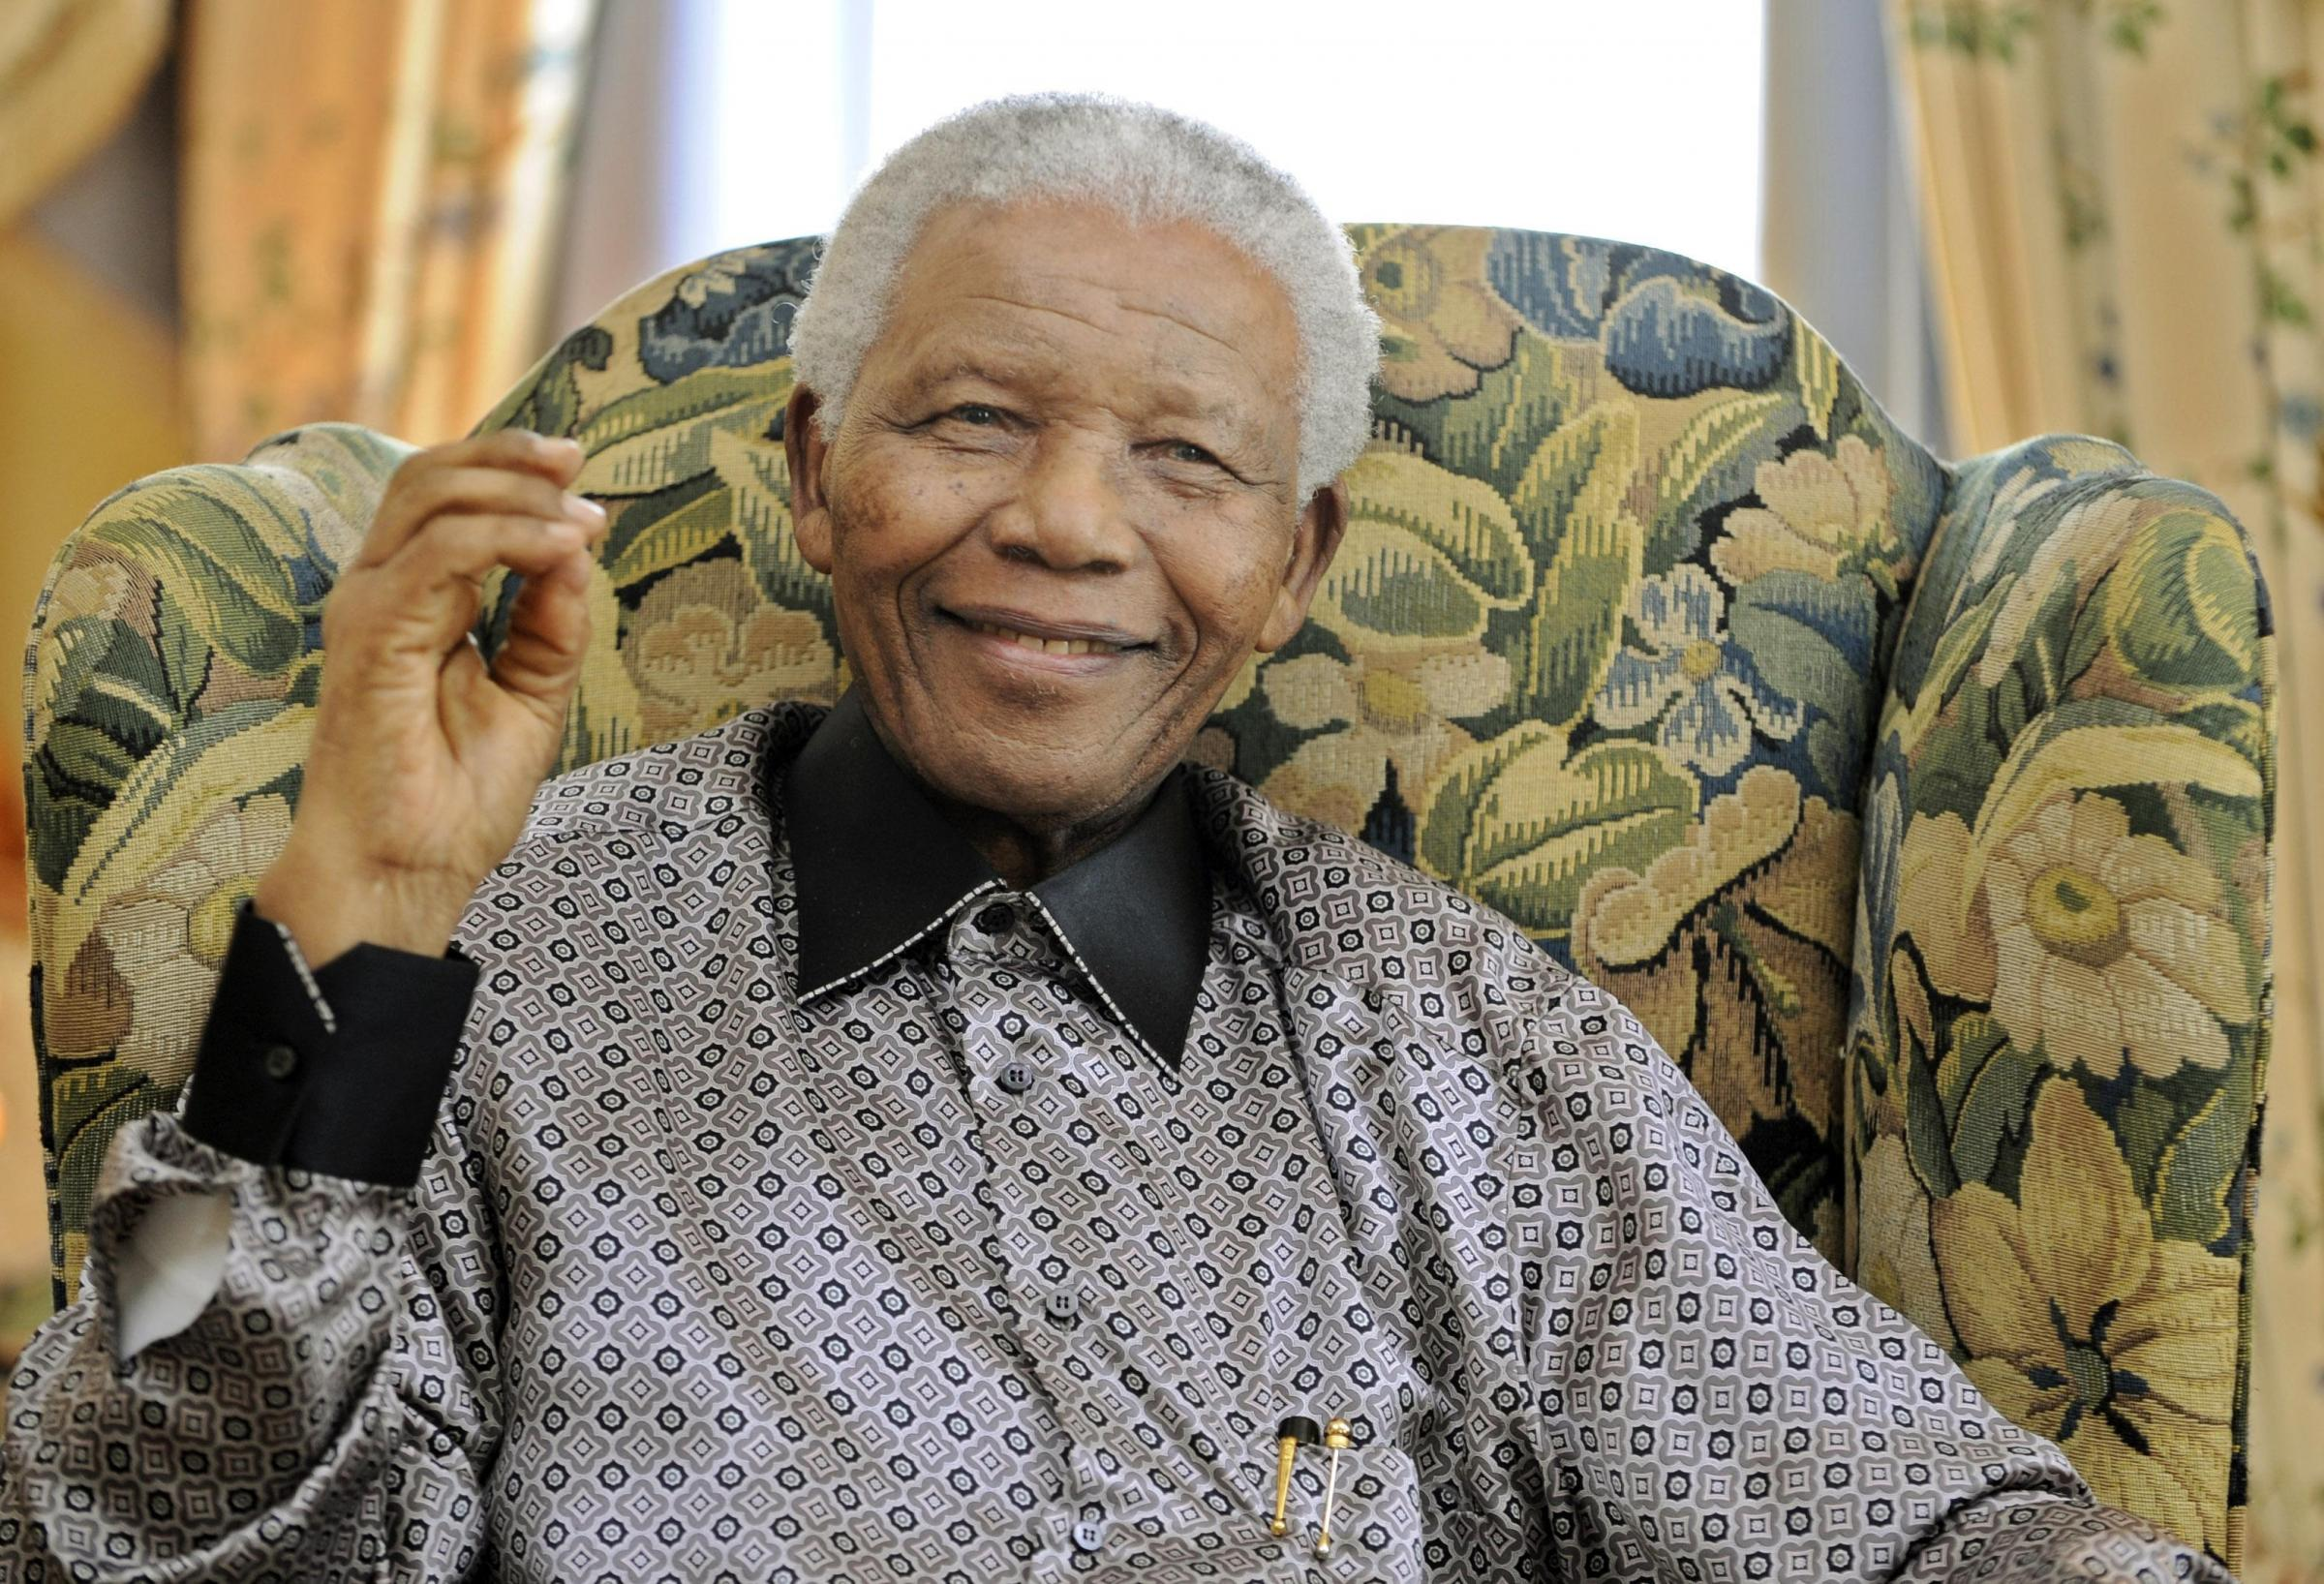 Nelson Mandela once said that hatred is learned